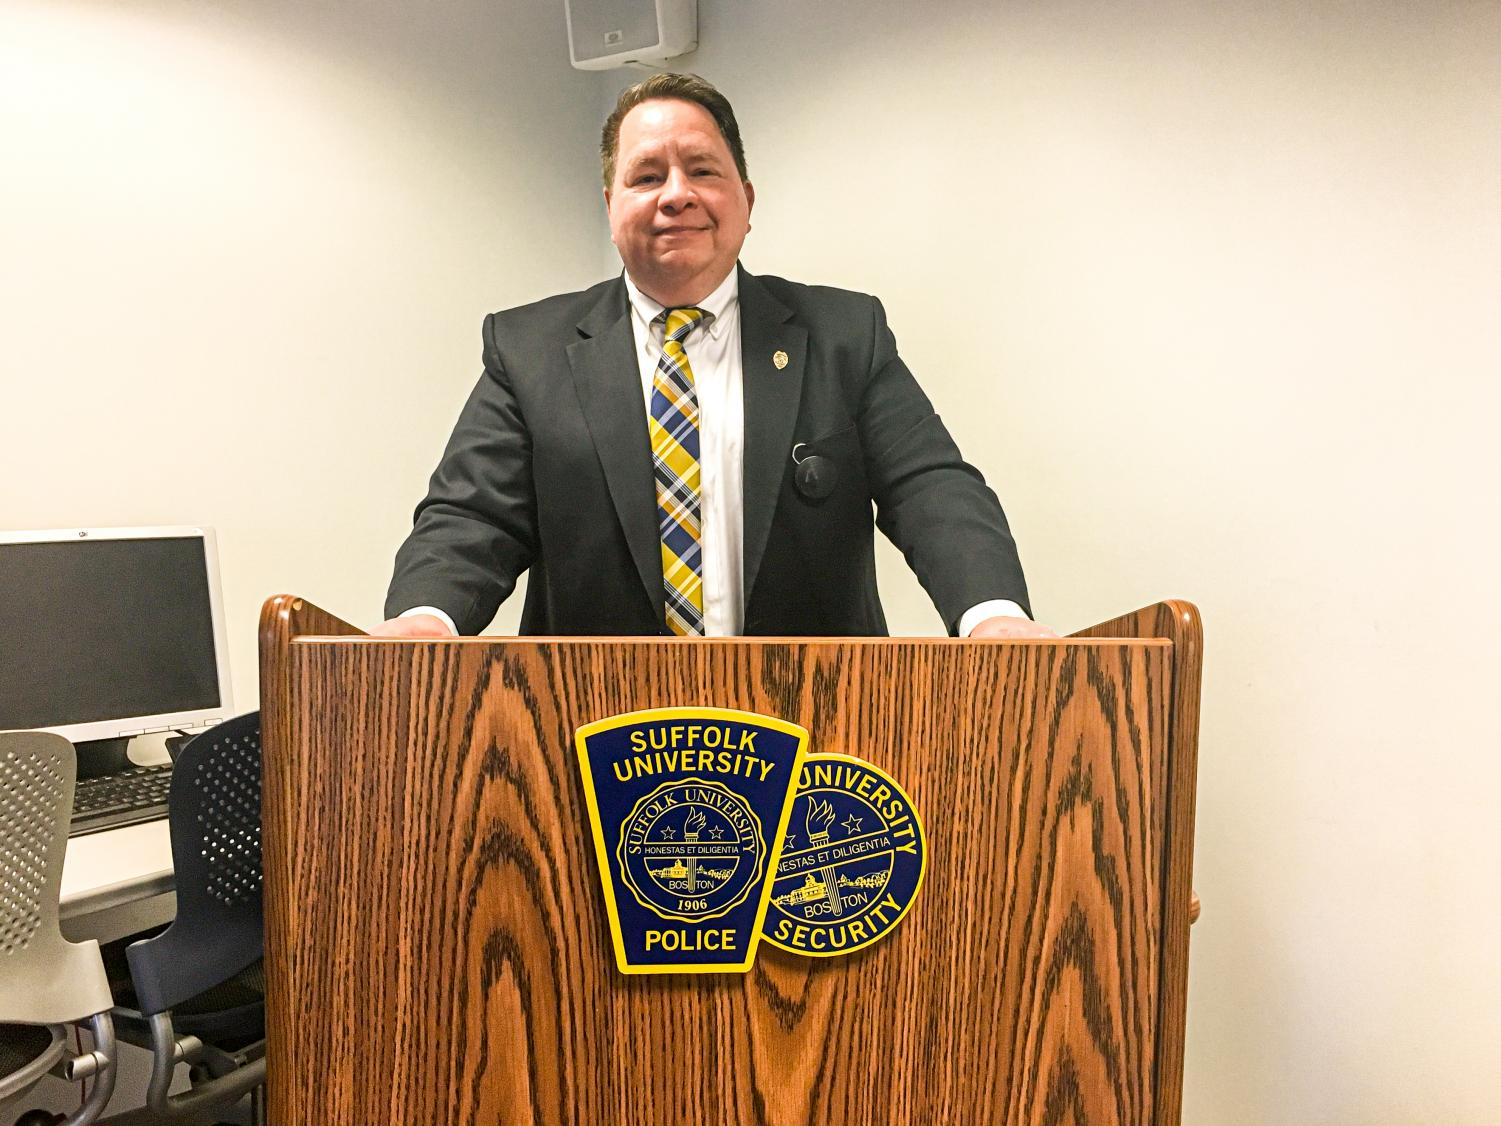 New interim Chief of Police Kenneth Walsh poses with the Suffolk University Police and Suffolk University Security seal